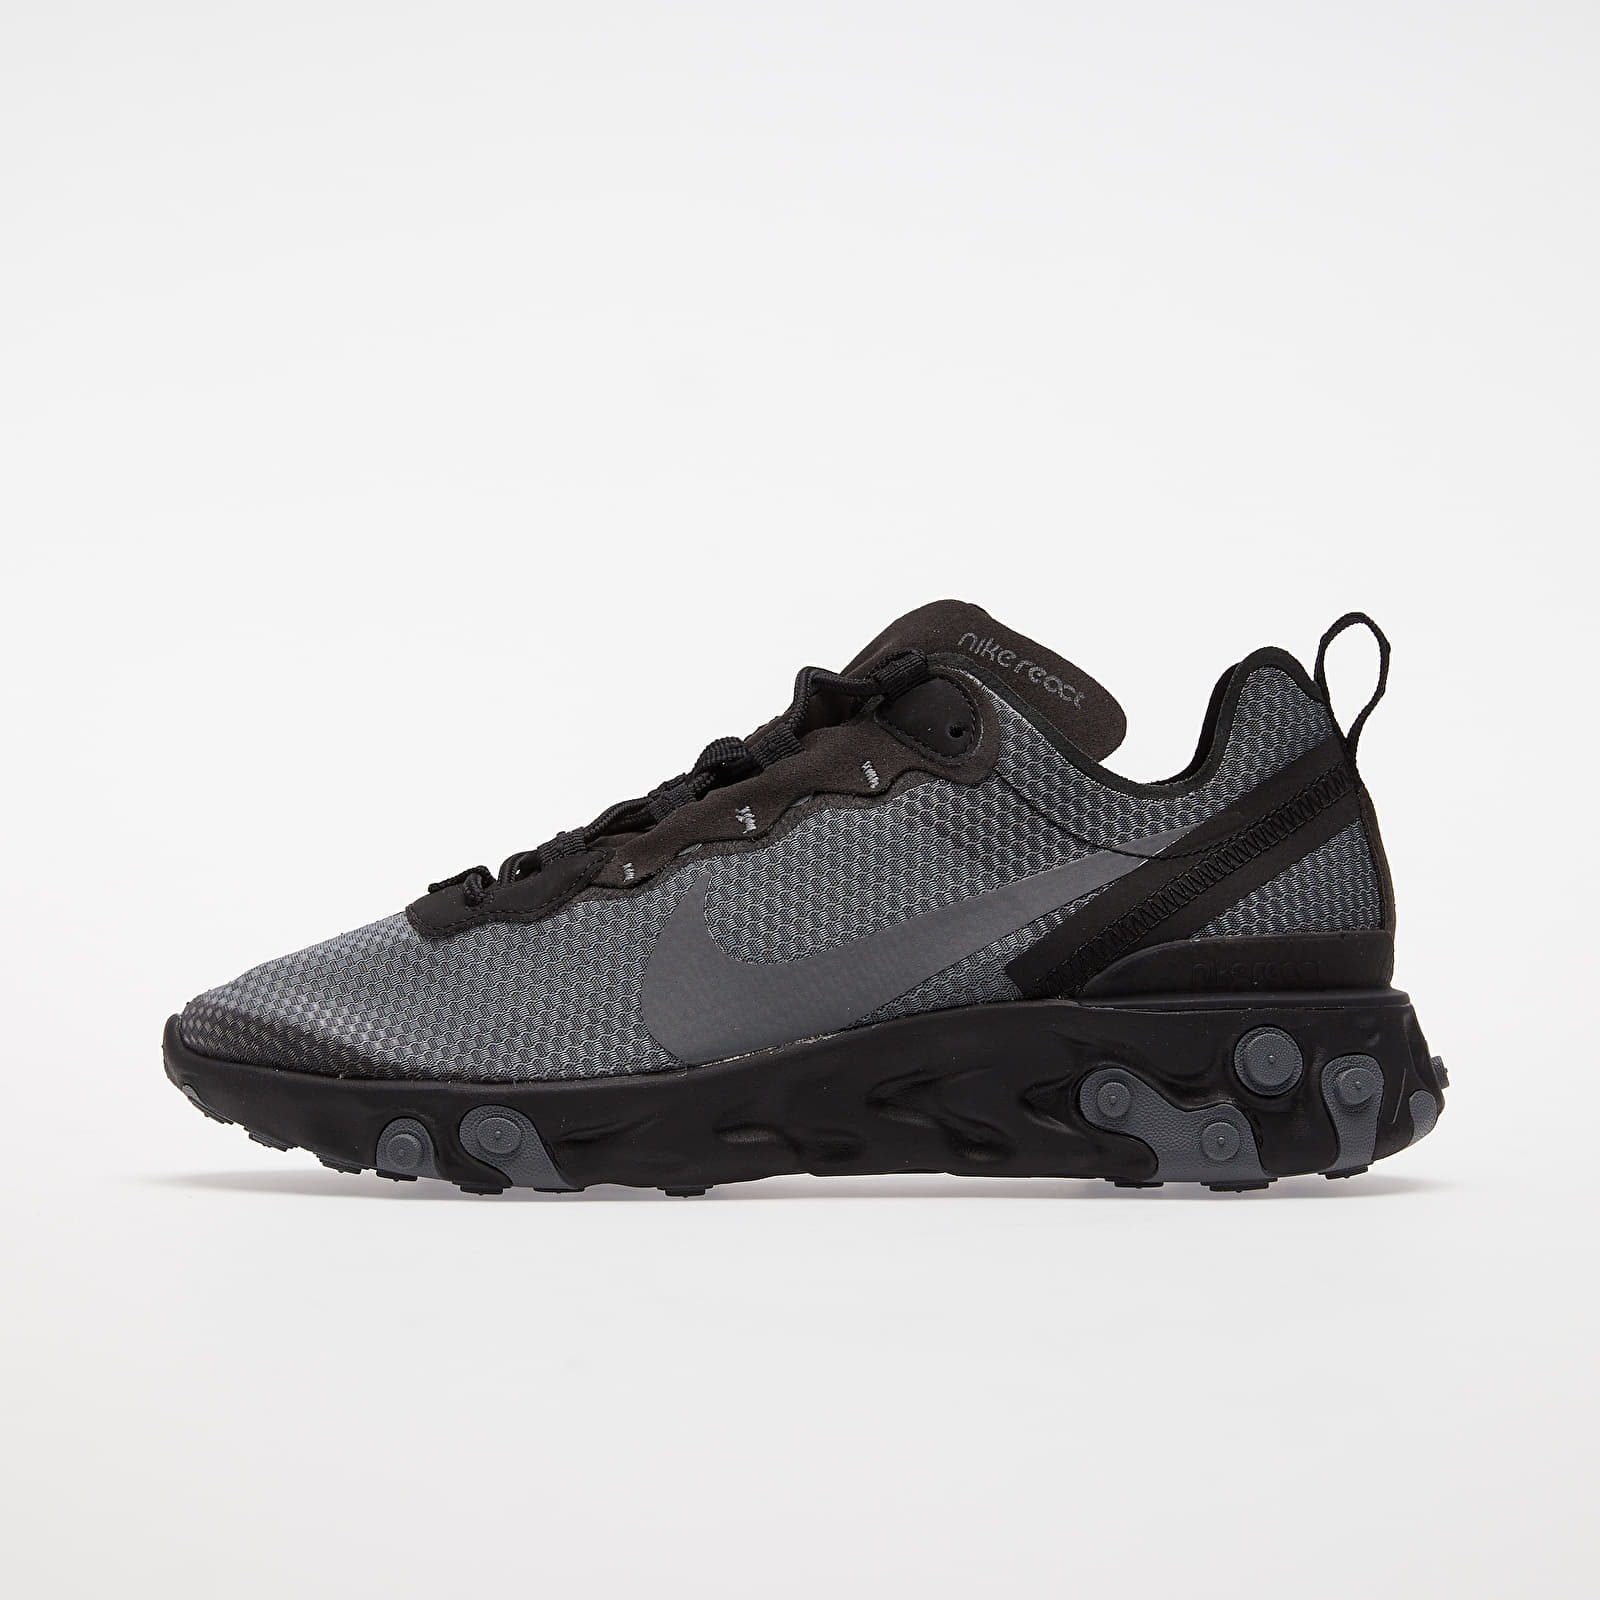 Muške tenisice Nike React Element 55 SE Black/ Dark Grey